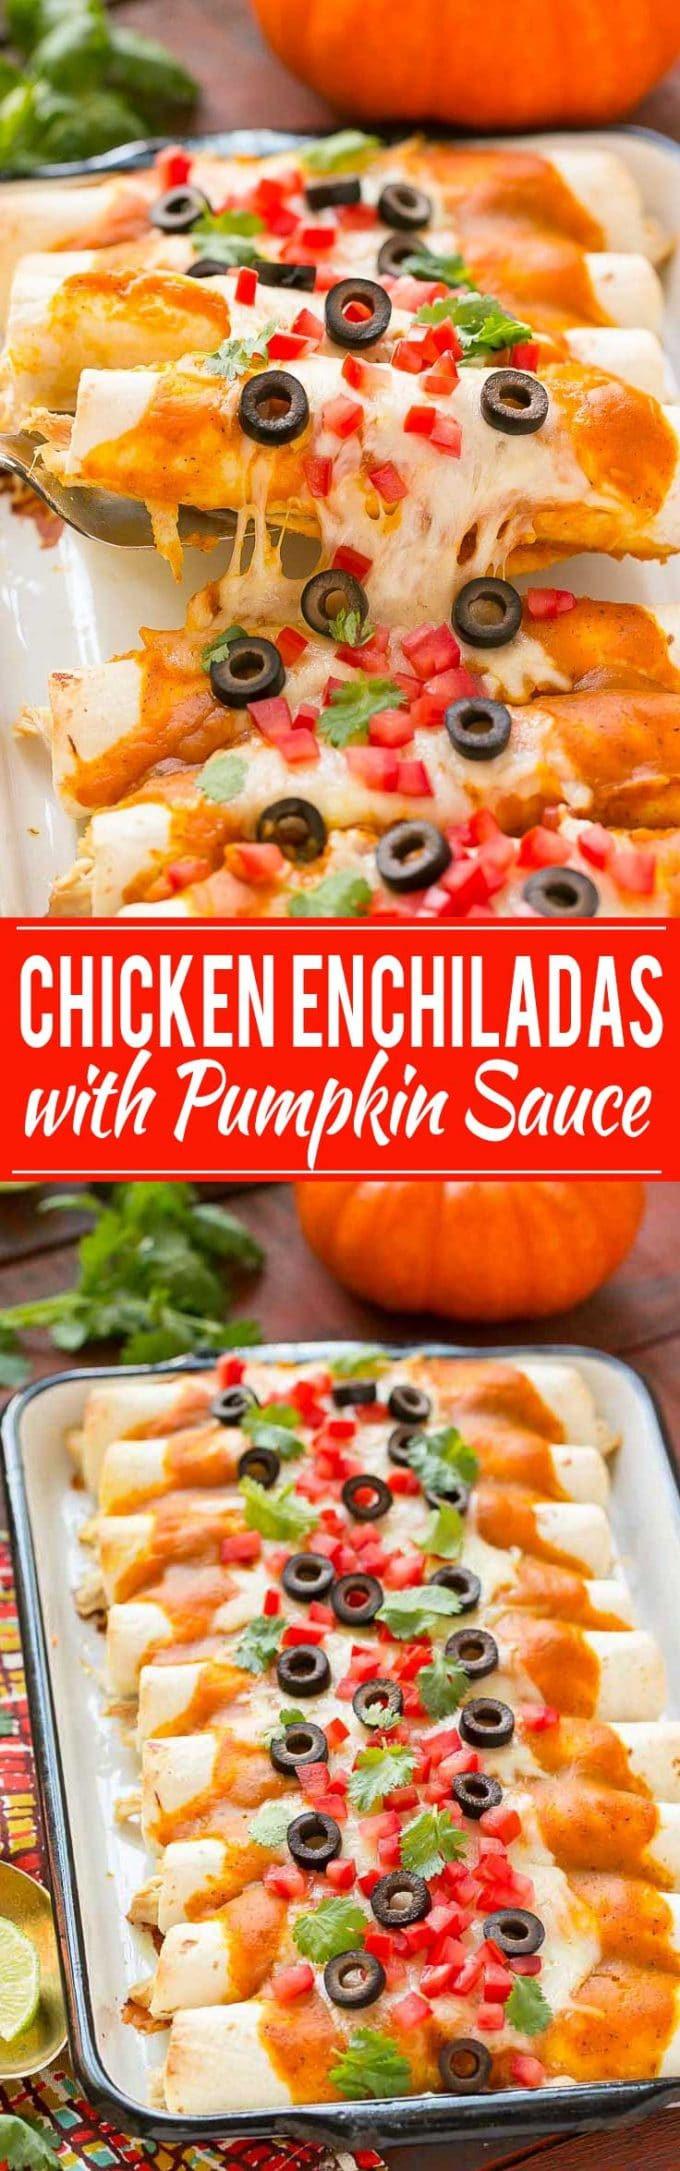 Chicken Enchiladas with Pumpkin Sauce Recipe | Pumpkin Chicken Enchiladas | Pumpkin Sauce | Chicken Enchiladas | Best Chicken Enchiladas